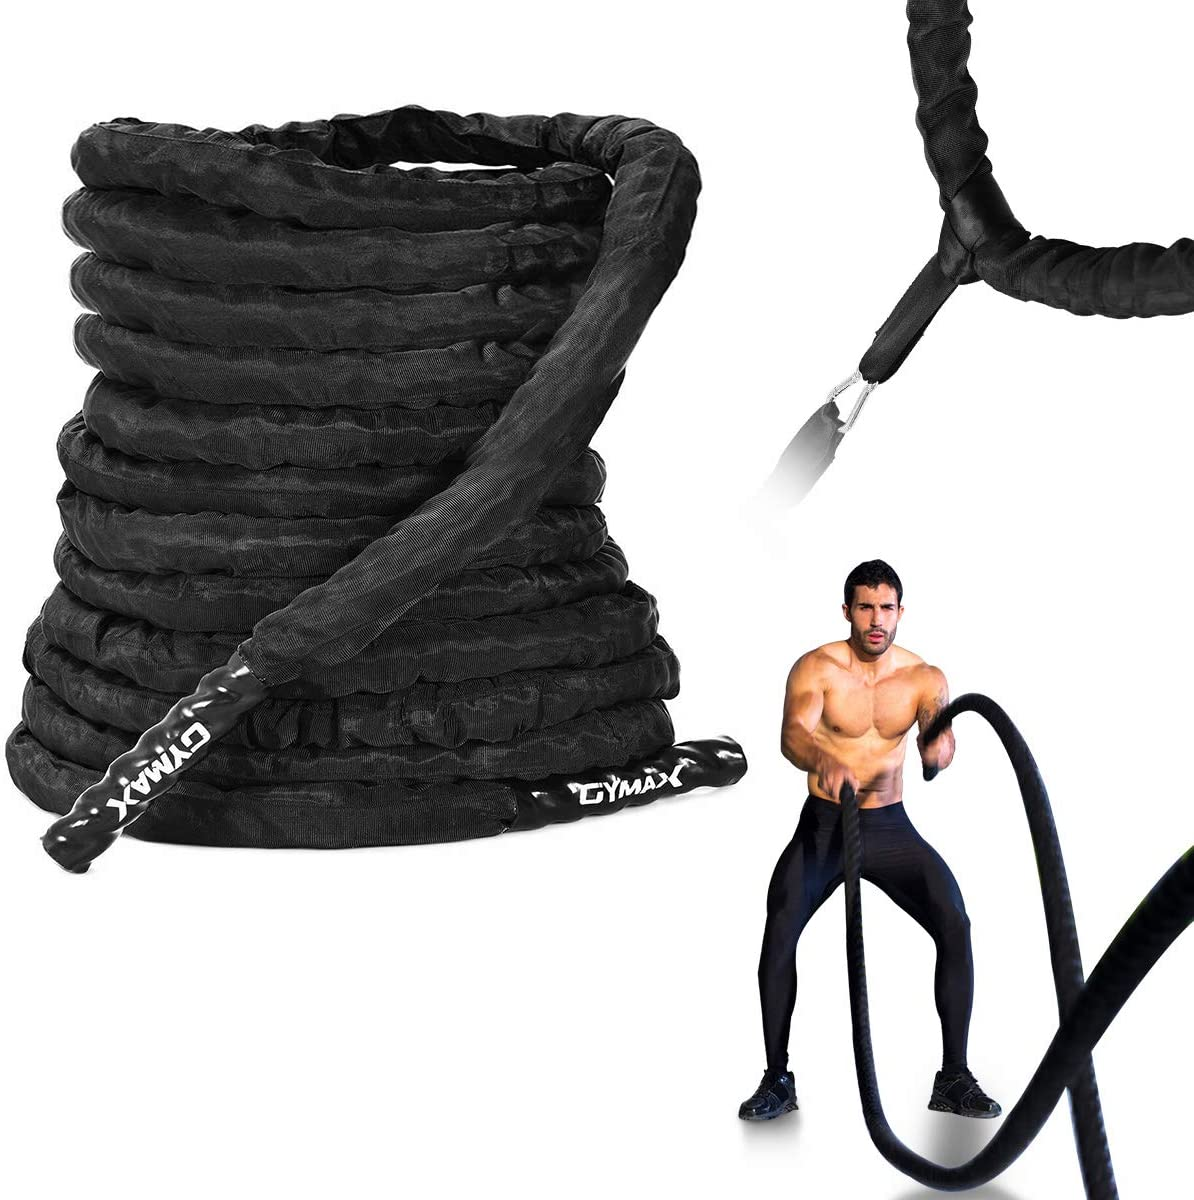 GYMAX Battle Rope with Anchor Strap Kit, 1.5 2 Diameter 30 40 50 ft Length Strength Training Rope with Heat Shrink Handle Protective Sleeve, 100 Poly Dacron Exercise Rope for Home, Gym